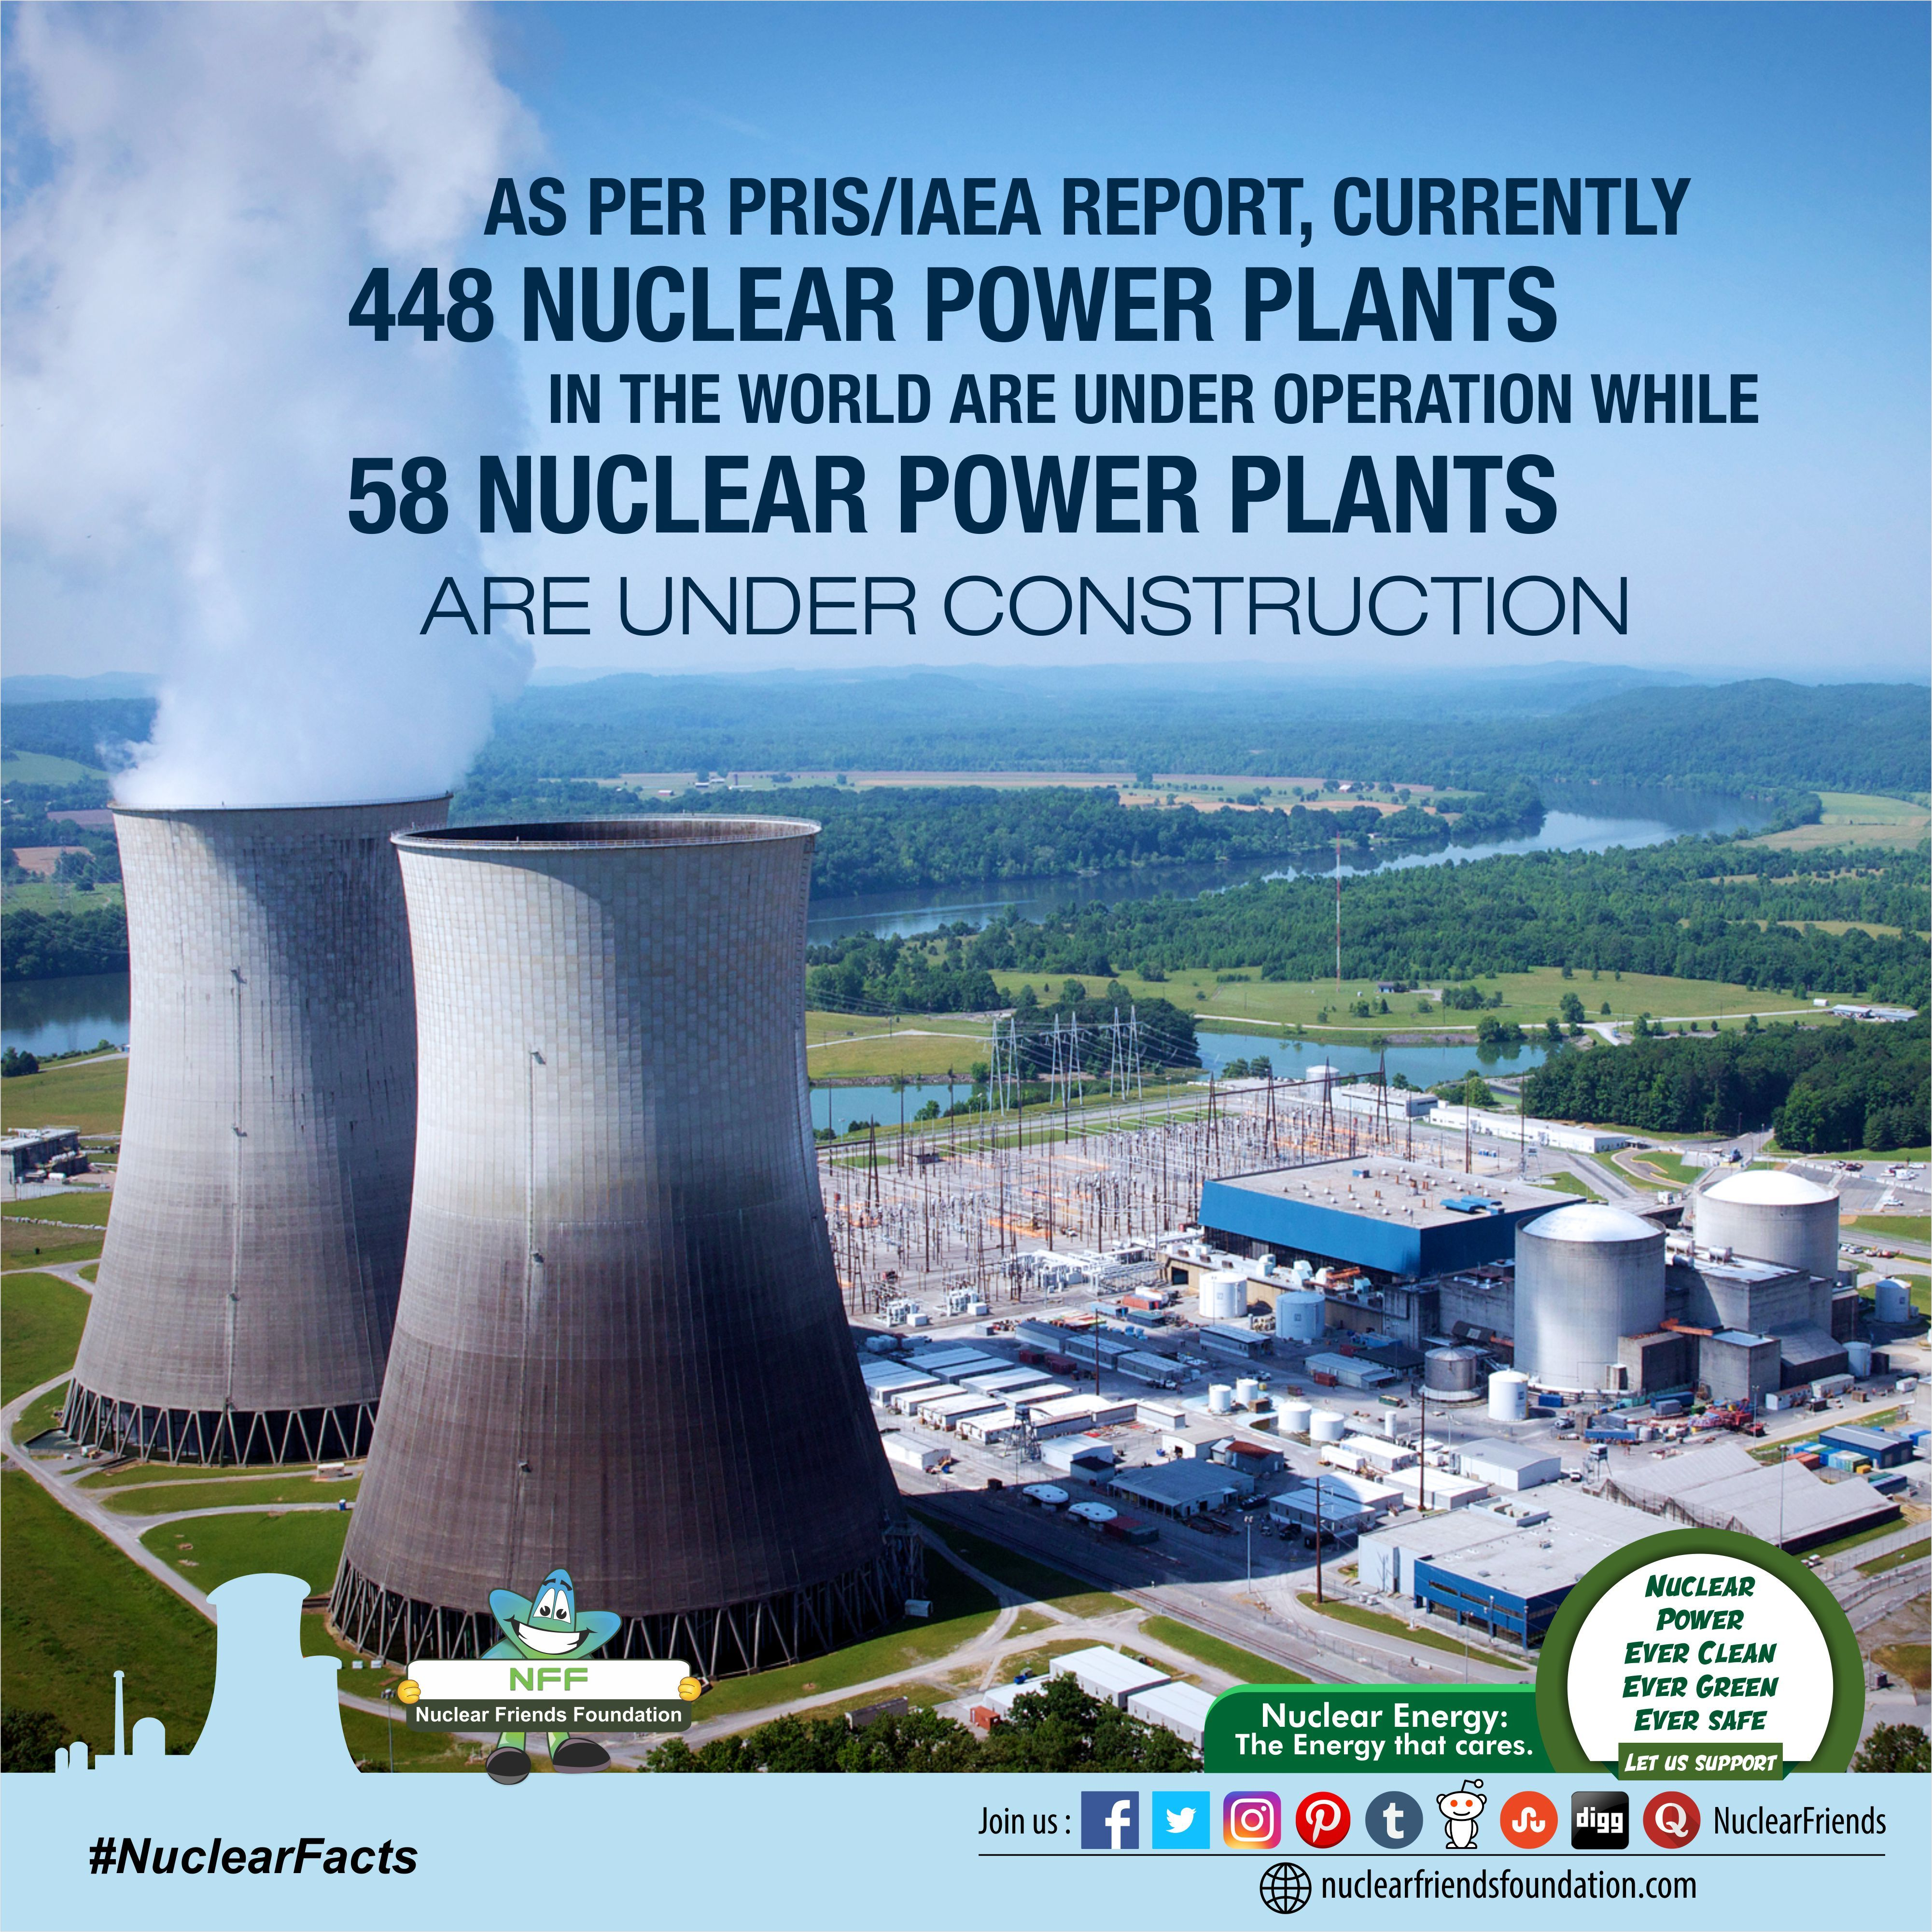 Pin On Nuclear Facts And Myths